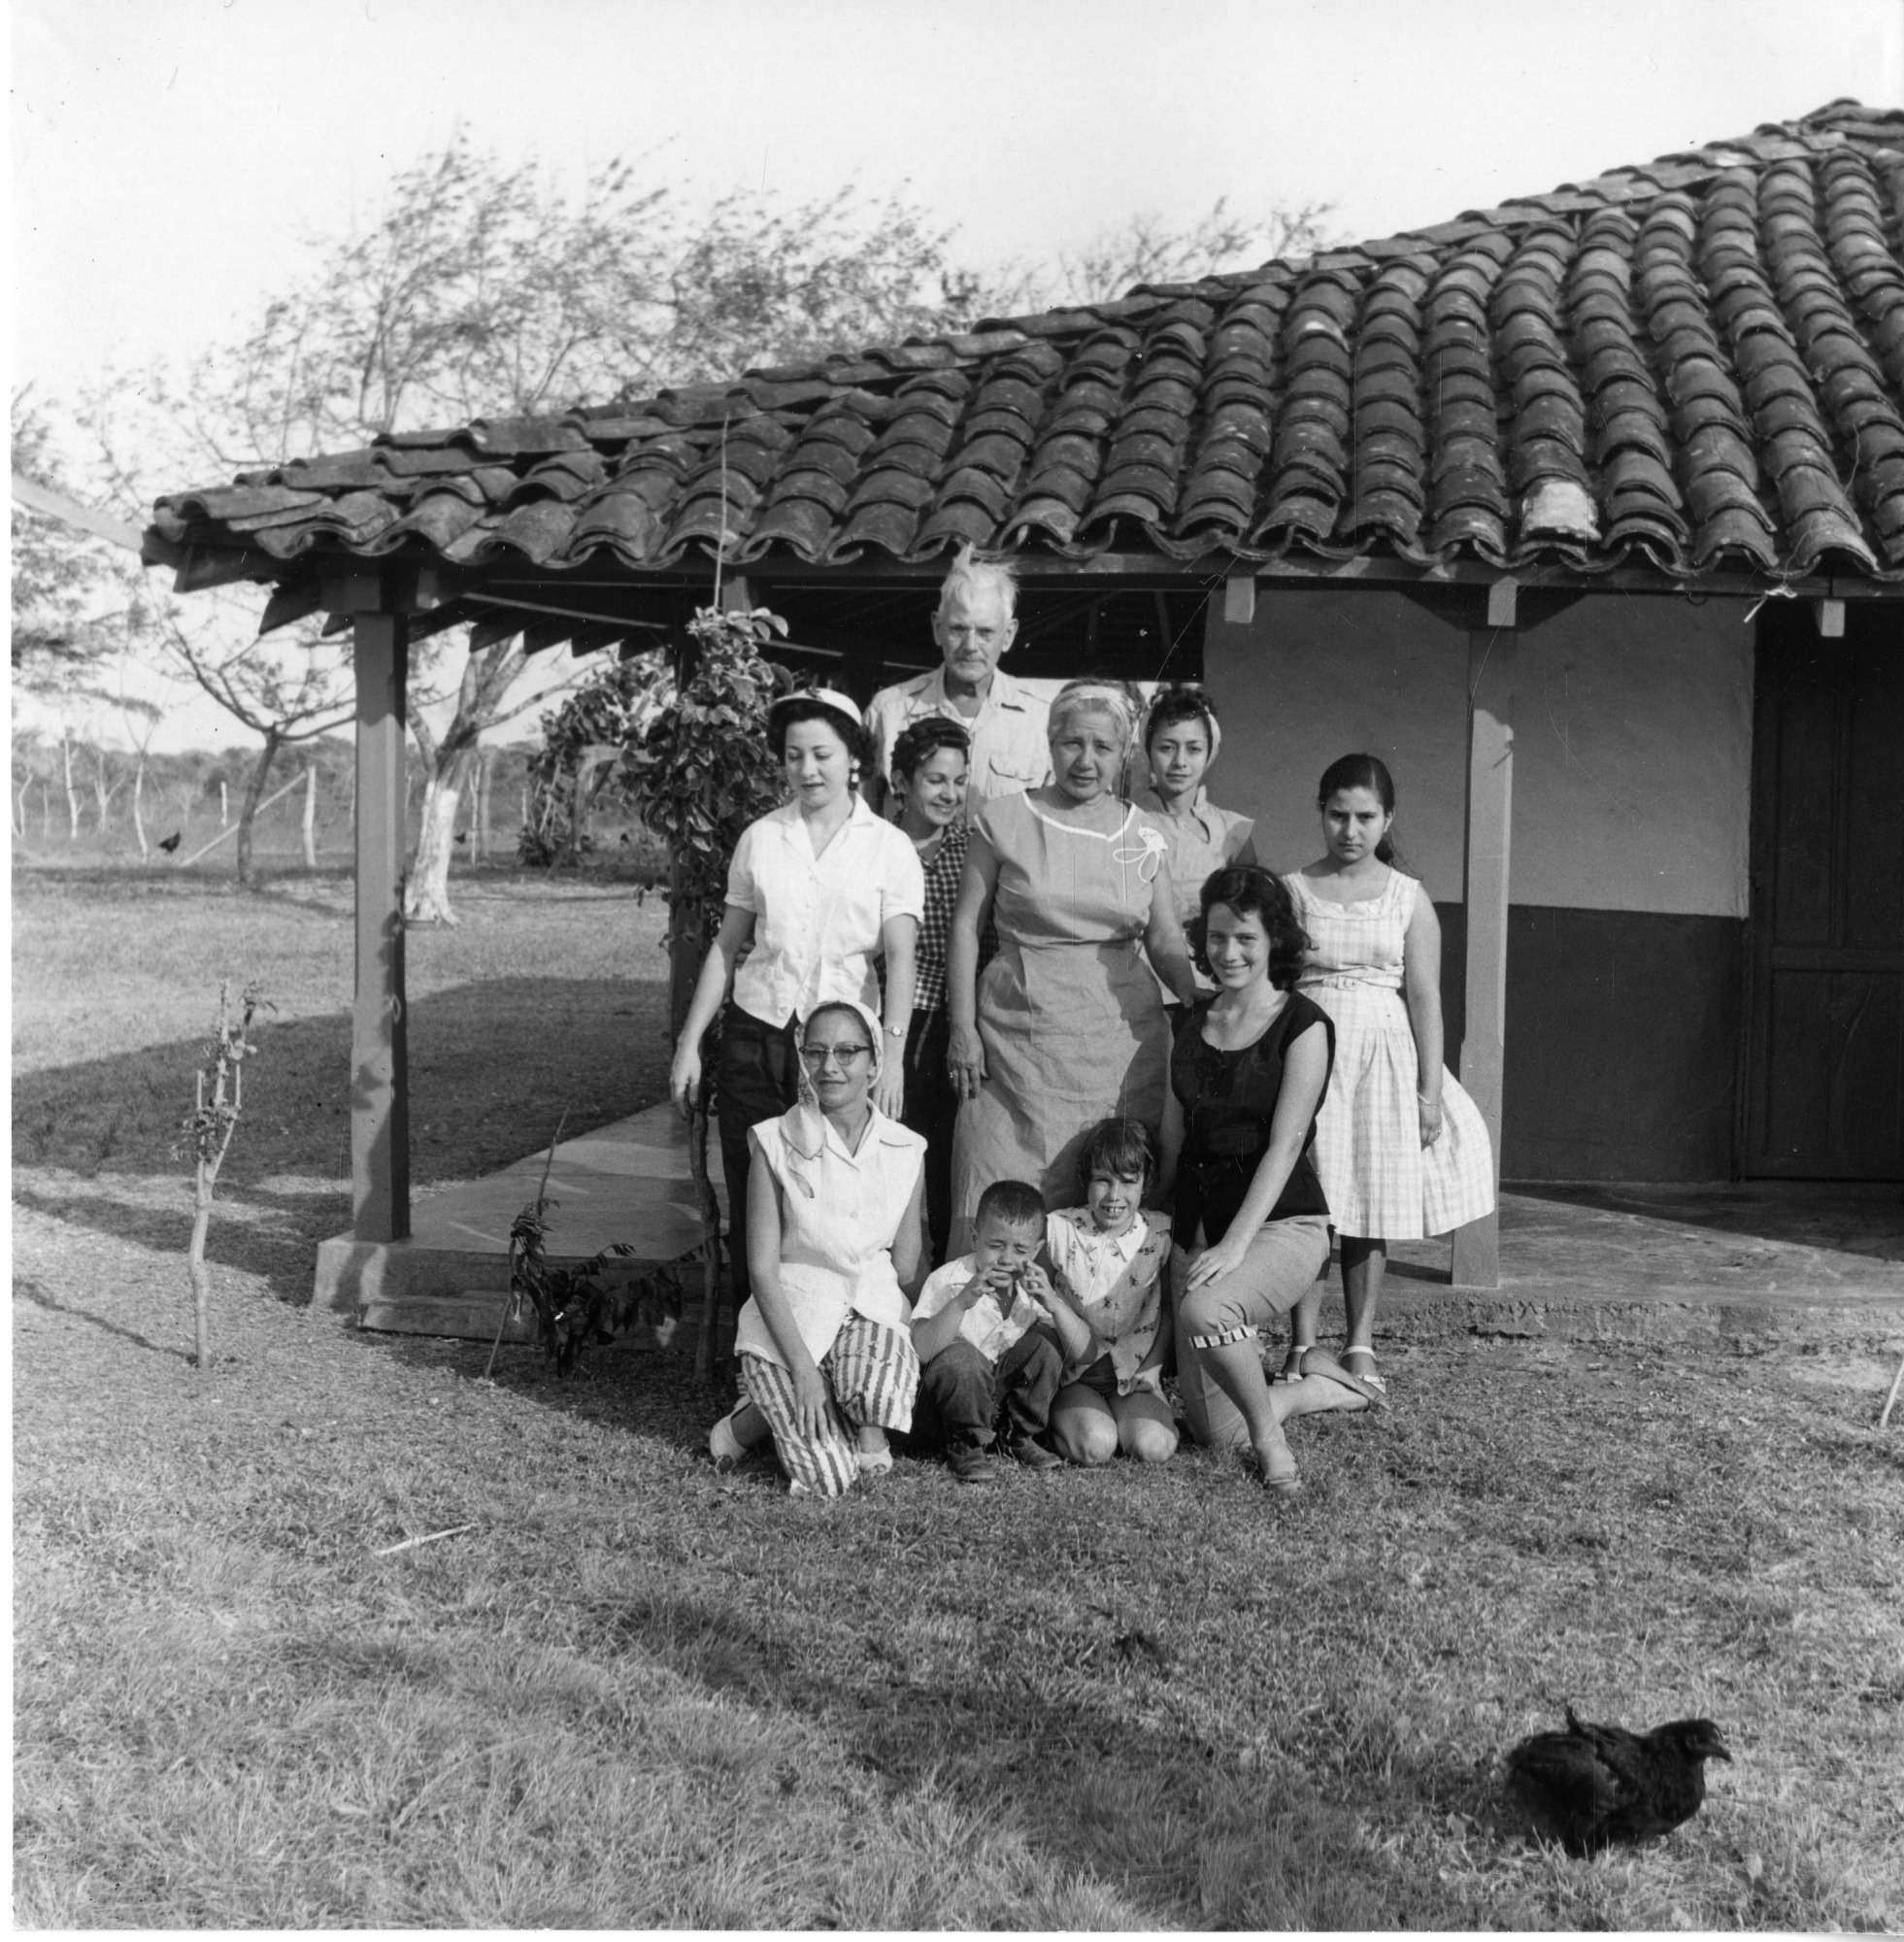 Alexander Wetmore with group near Punta Mala, March 12, 1957